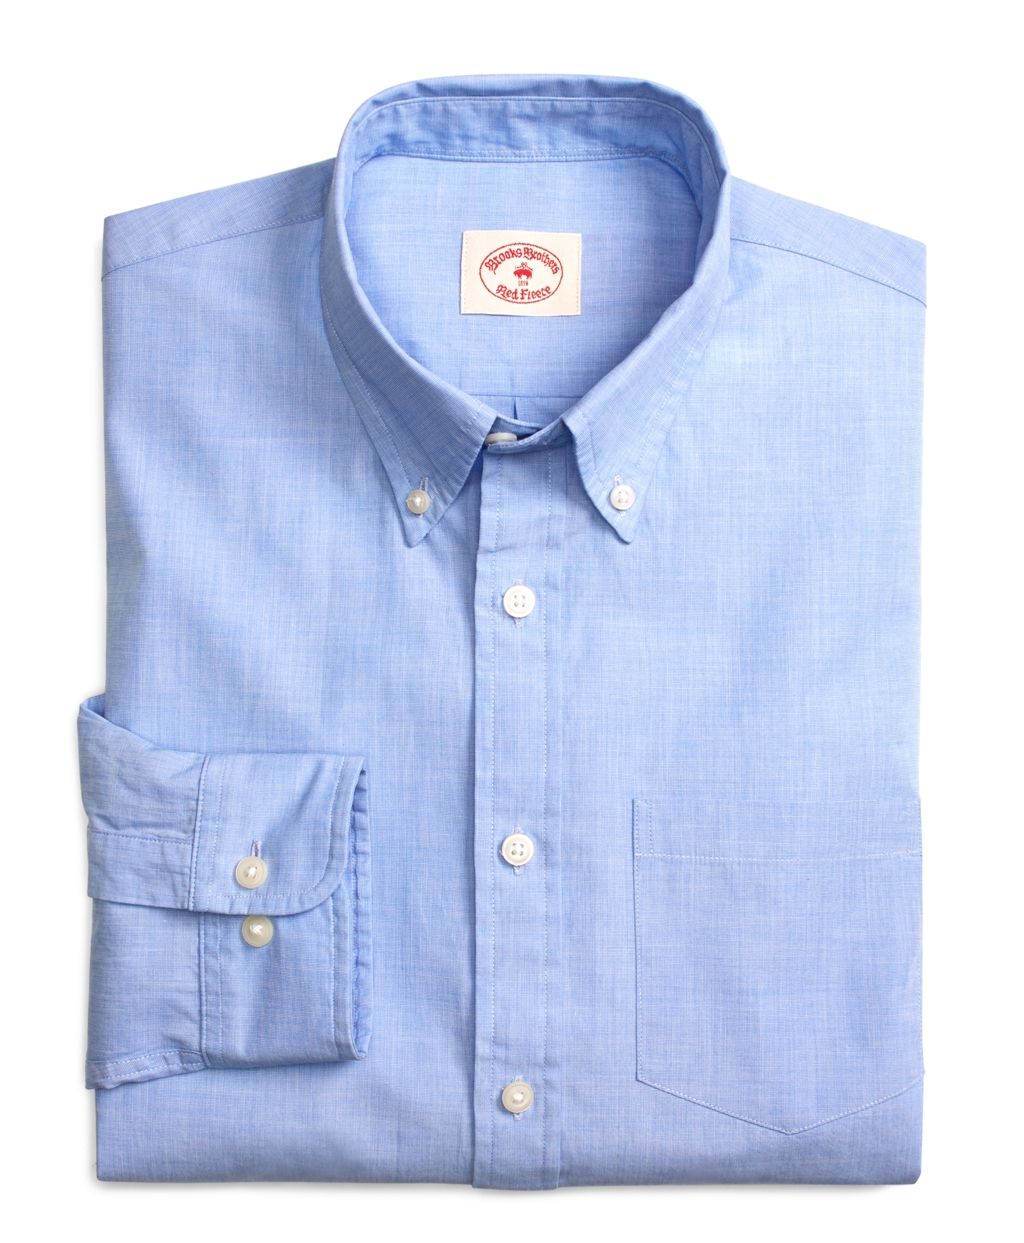 Brooks brothers solid light blue end on end sport shirt in for Brooks brothers sports shirts